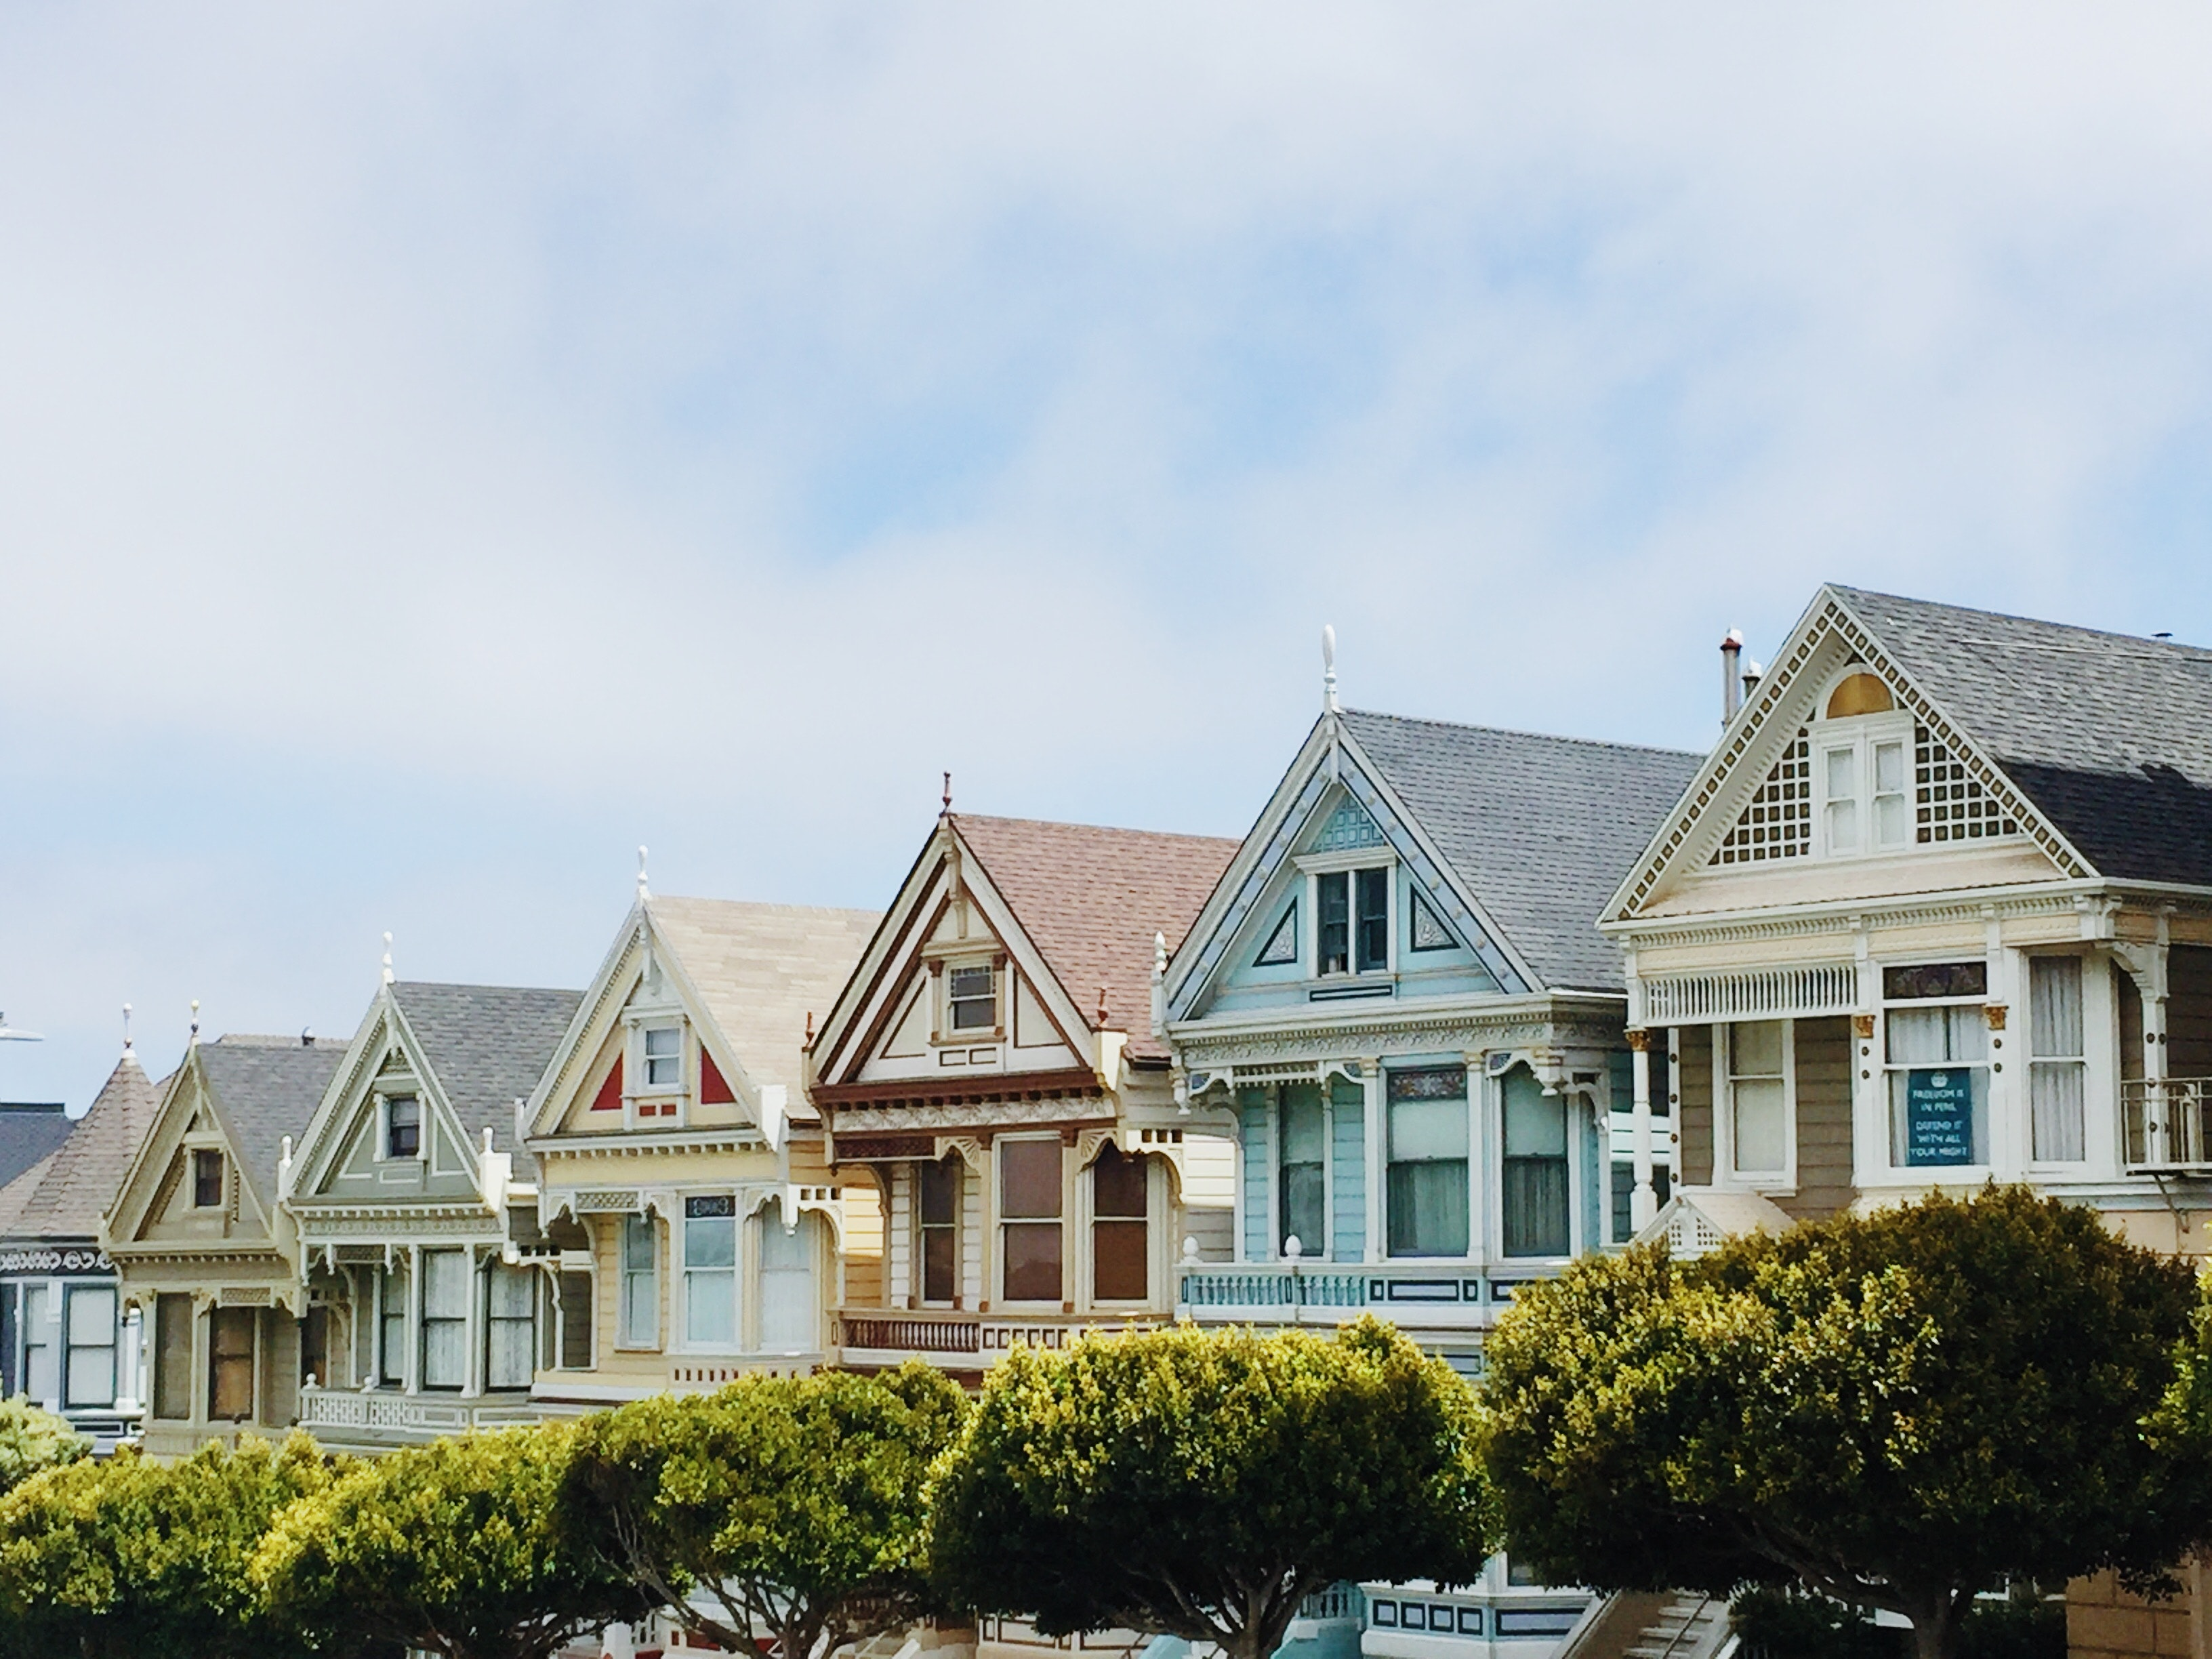 San francisco houses with differeing colours lined up beautifully net to one another